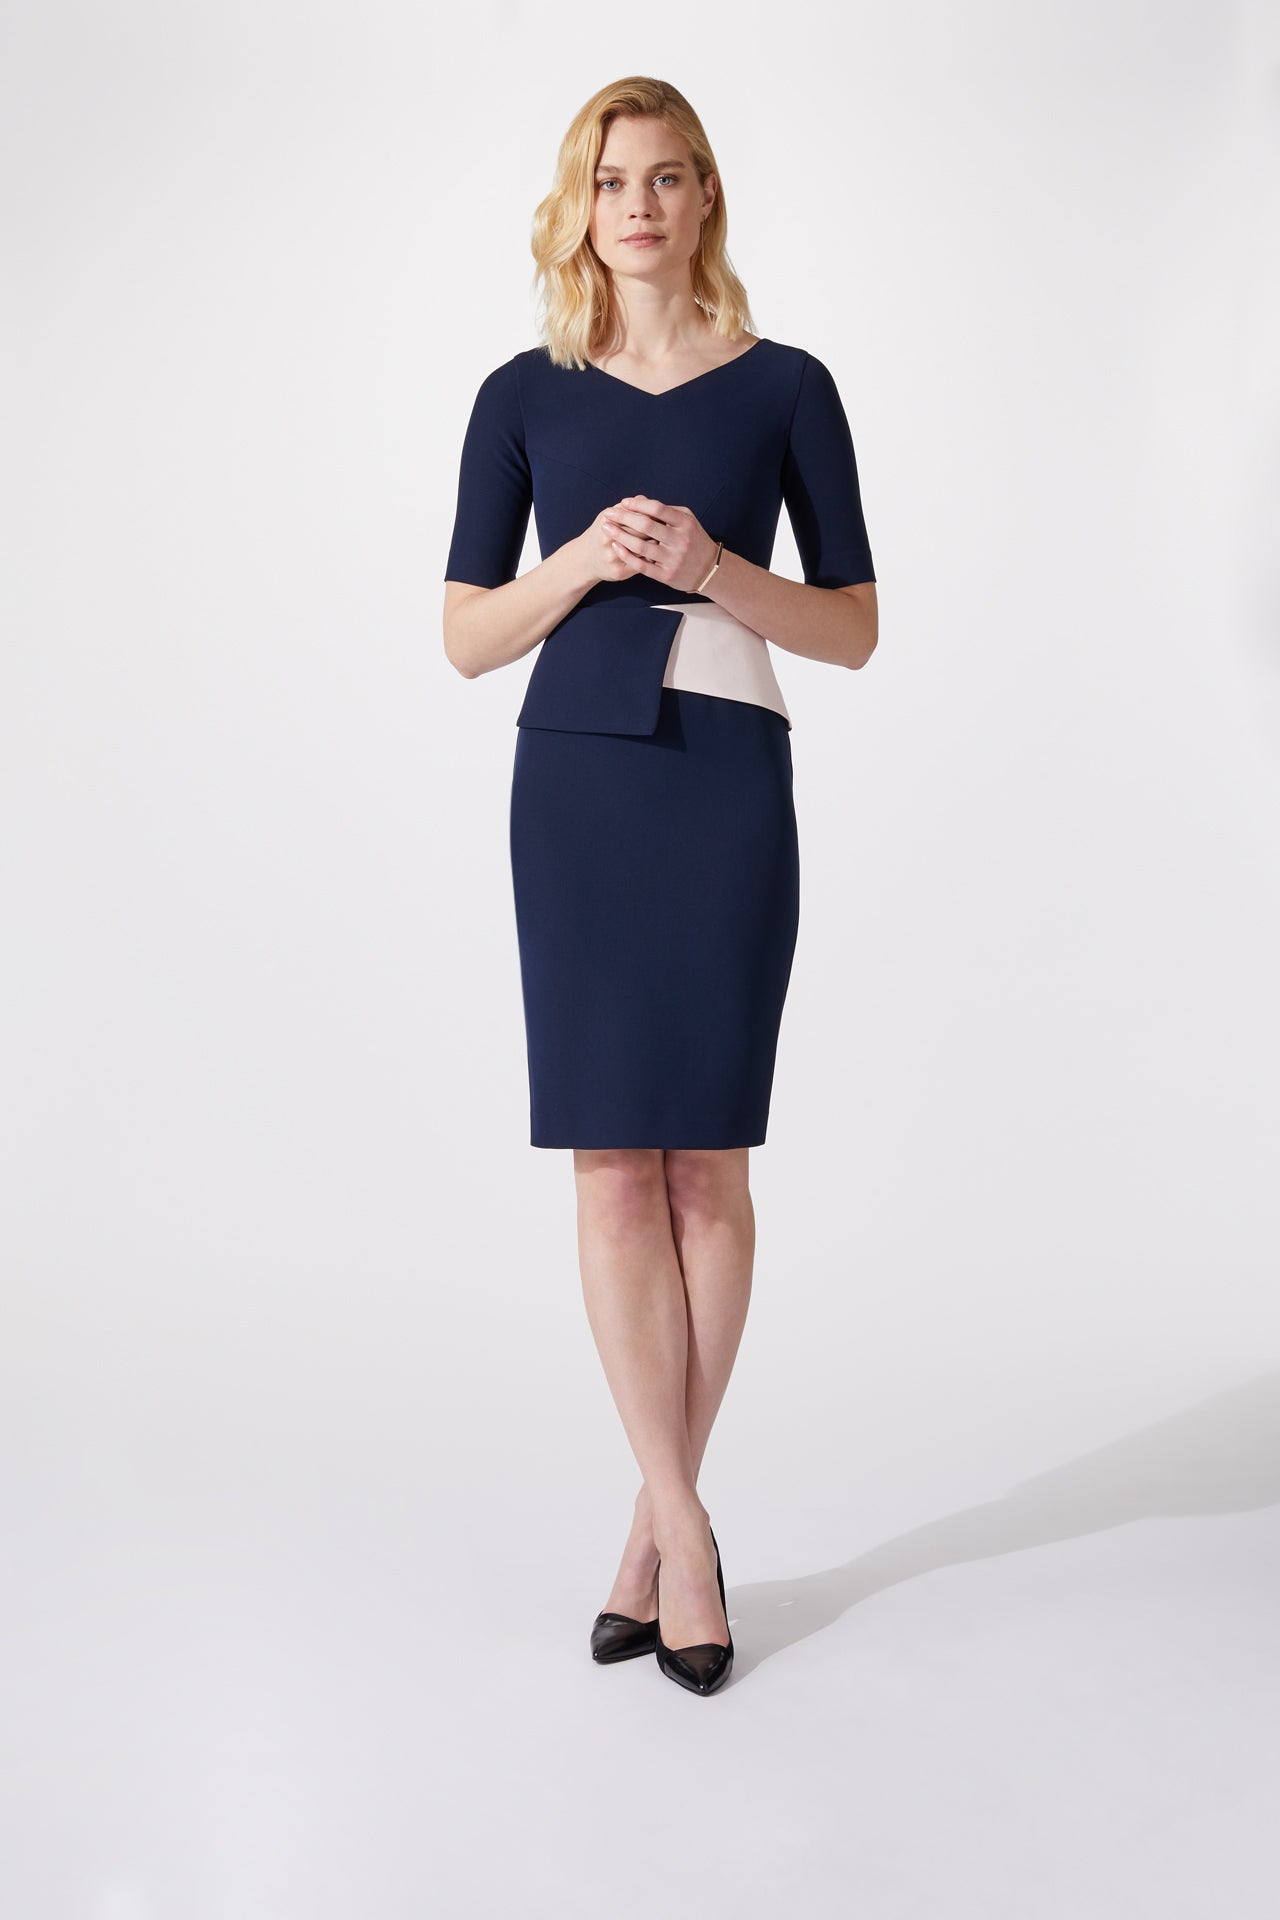 Sydney Dress Navy & Blush